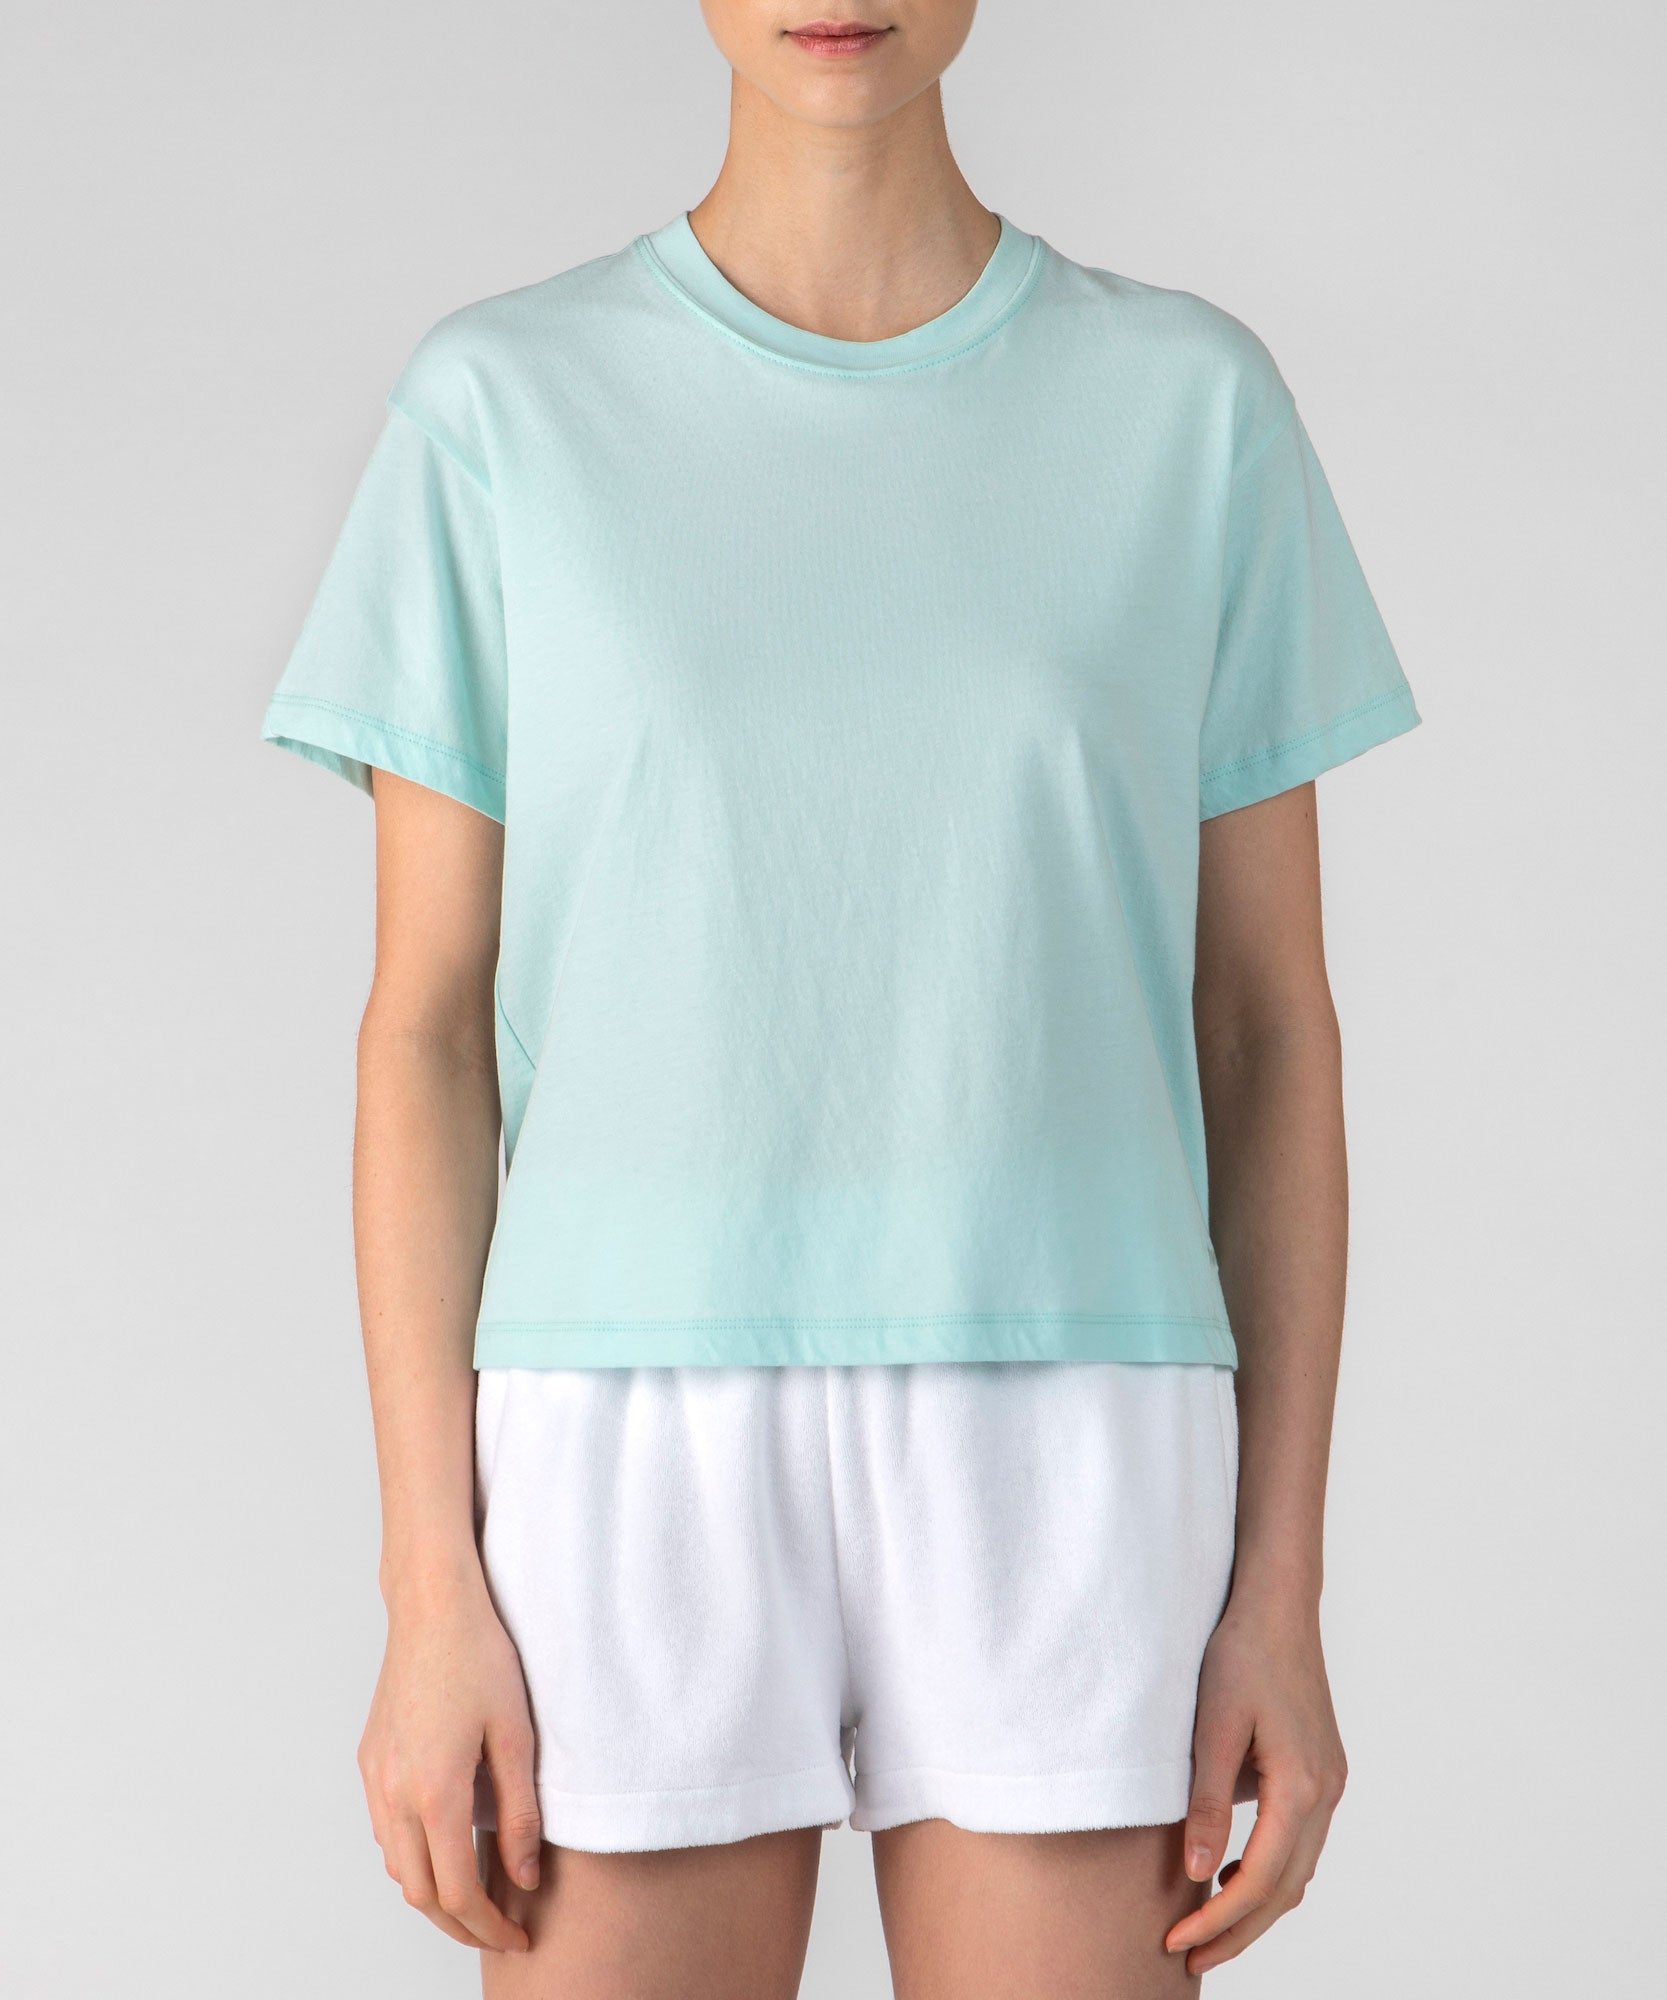 Bleached Aqua Classic Jersey Short Sleeve Boy Tee - Women's Cotton Short Sleeve T-shirt by ATM Anthony Thomas Melillo